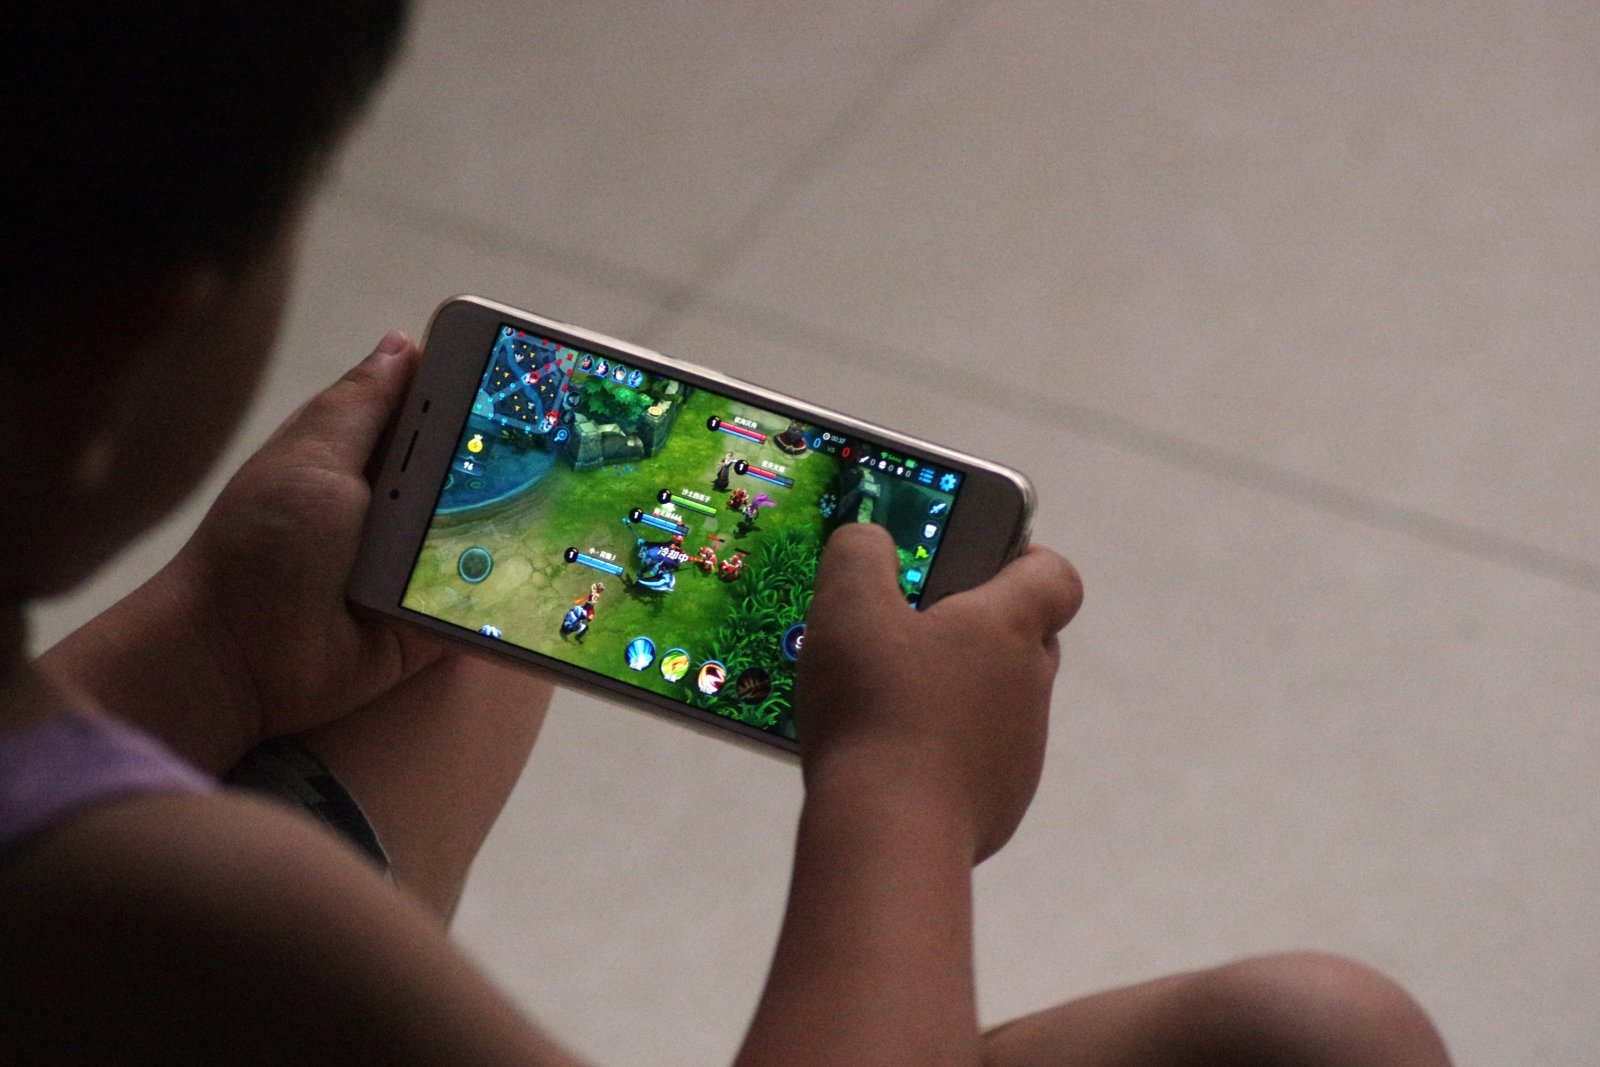 Tencent games will verify IDs to limit playing time for children | DeviceDaily.com